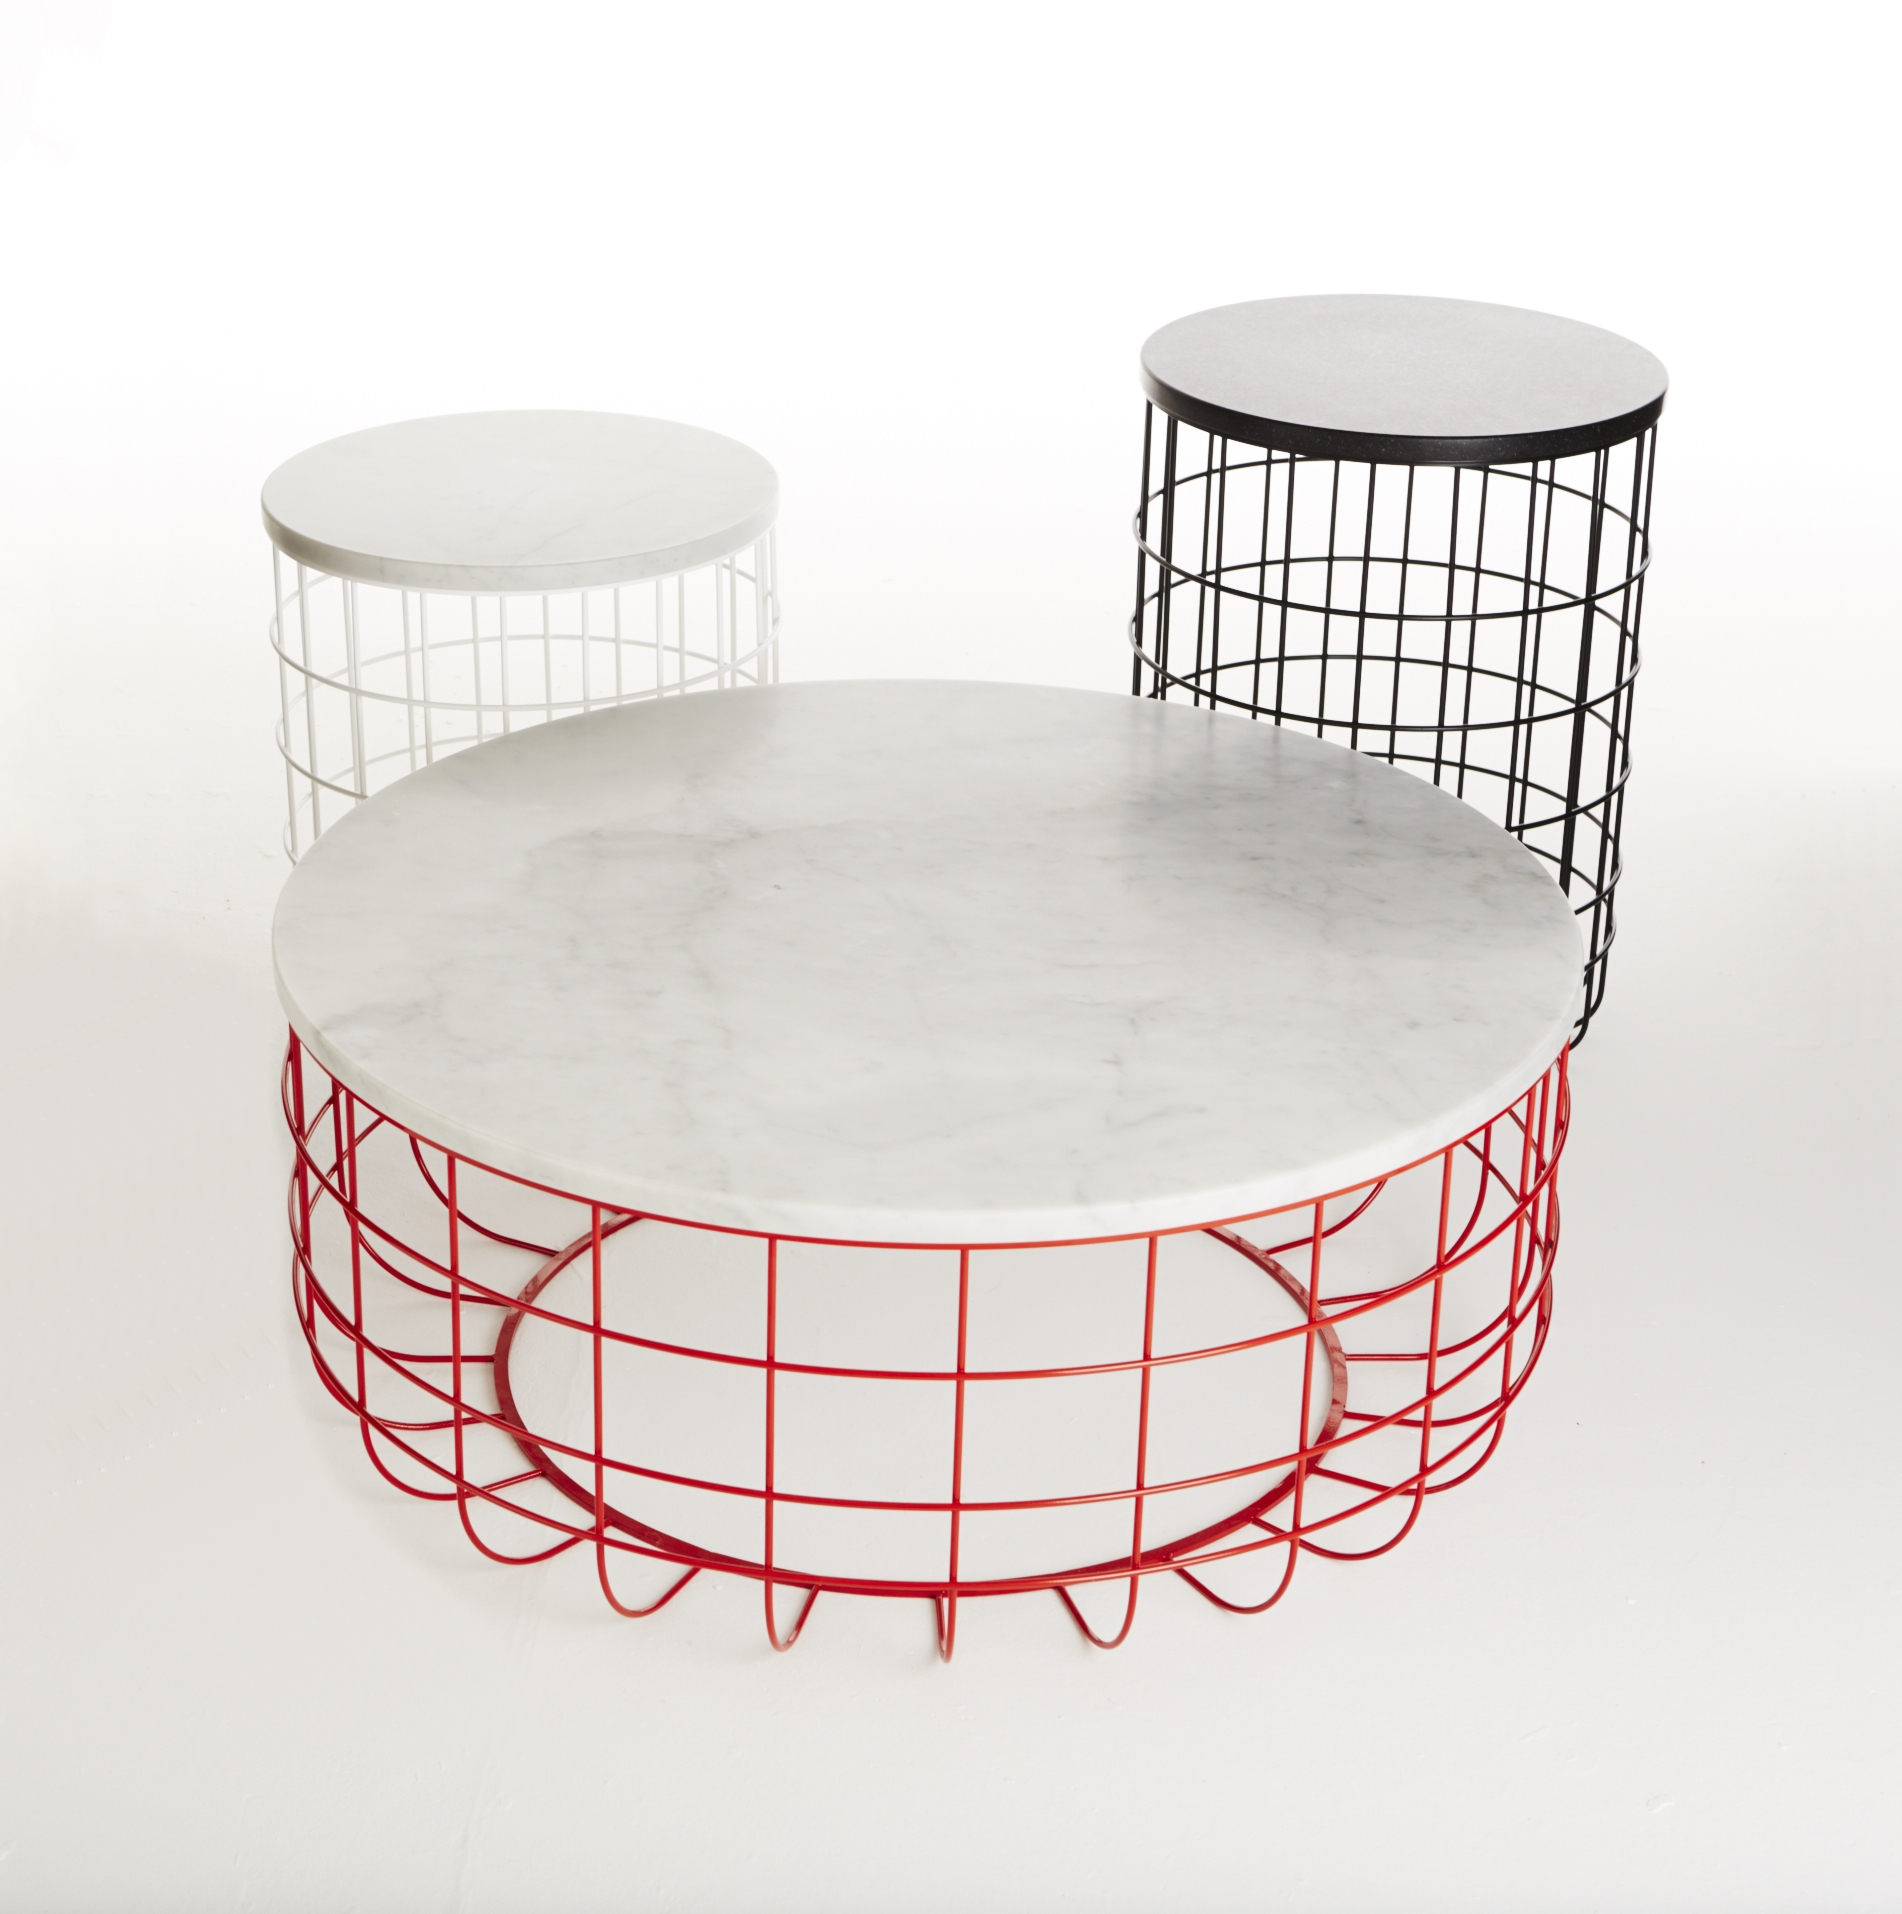 WIRE Low Coffee Table By Dare Studio Design Sean Dare